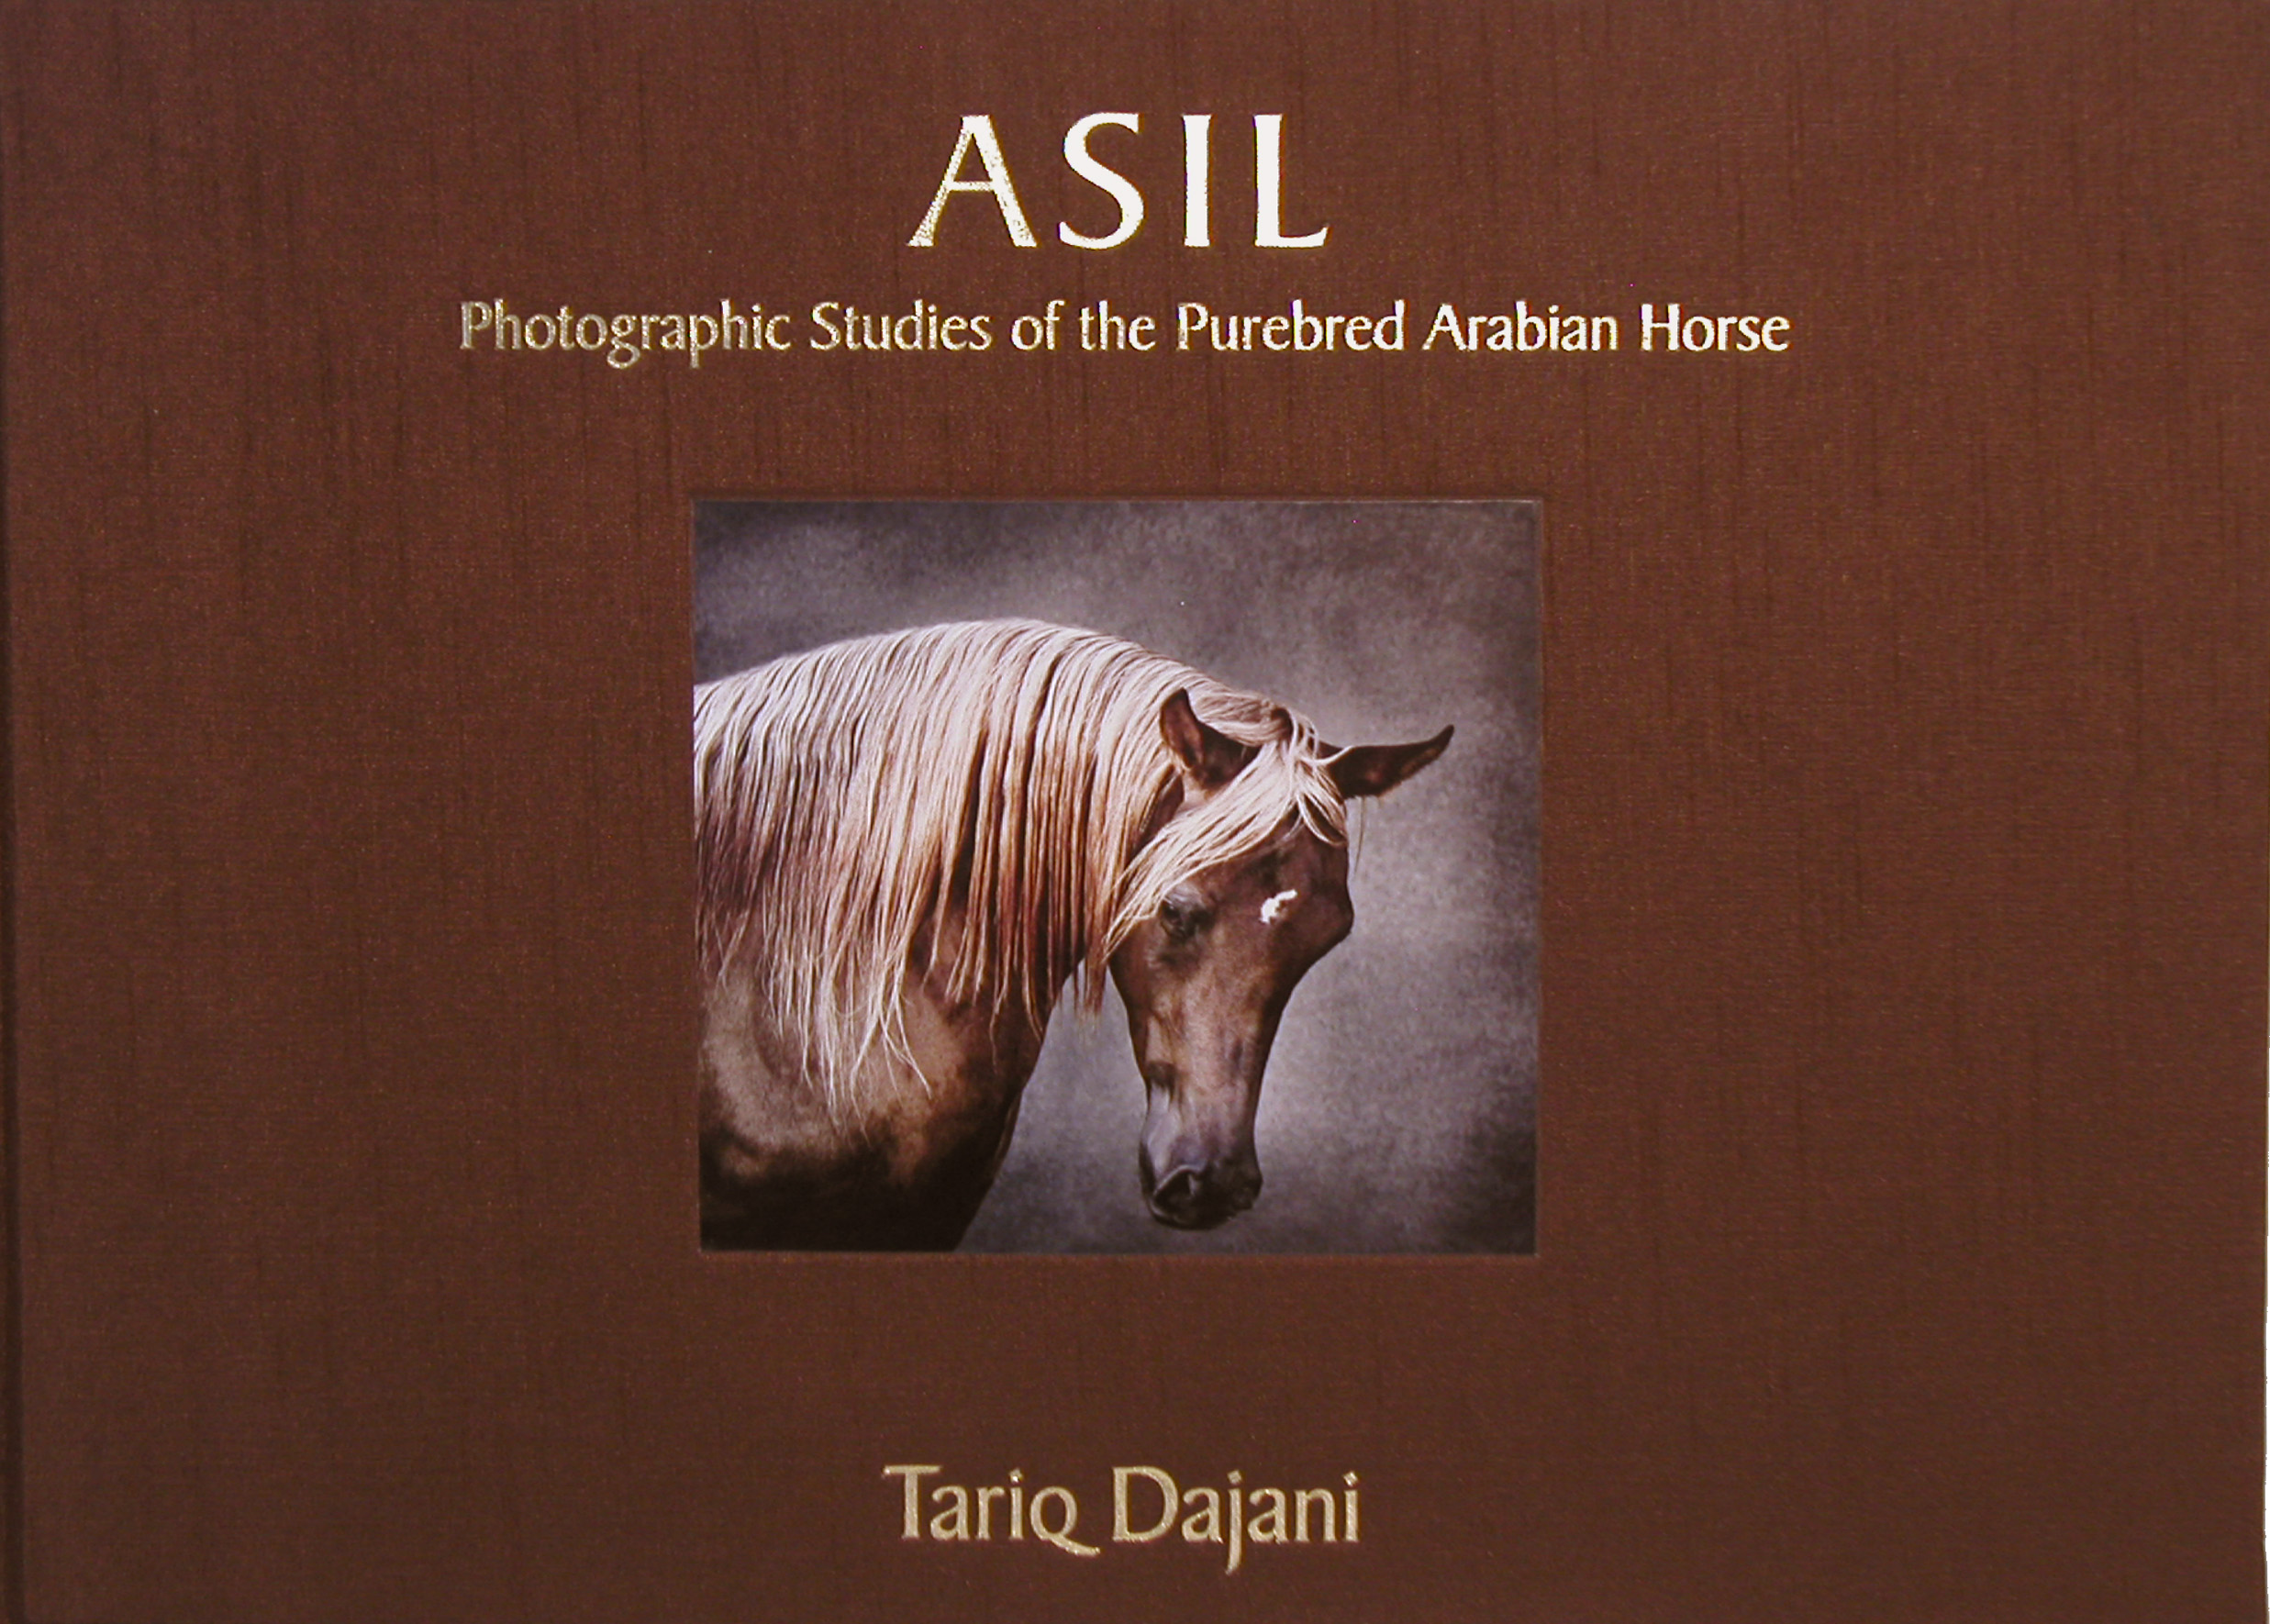 Horse Times Egypt: Equestrian Magazine :News :ASIL: PHOTOGRAPHIC STUDIES OF THE PUREBRED ARABIAN HORSE – IS FINALLY OUT